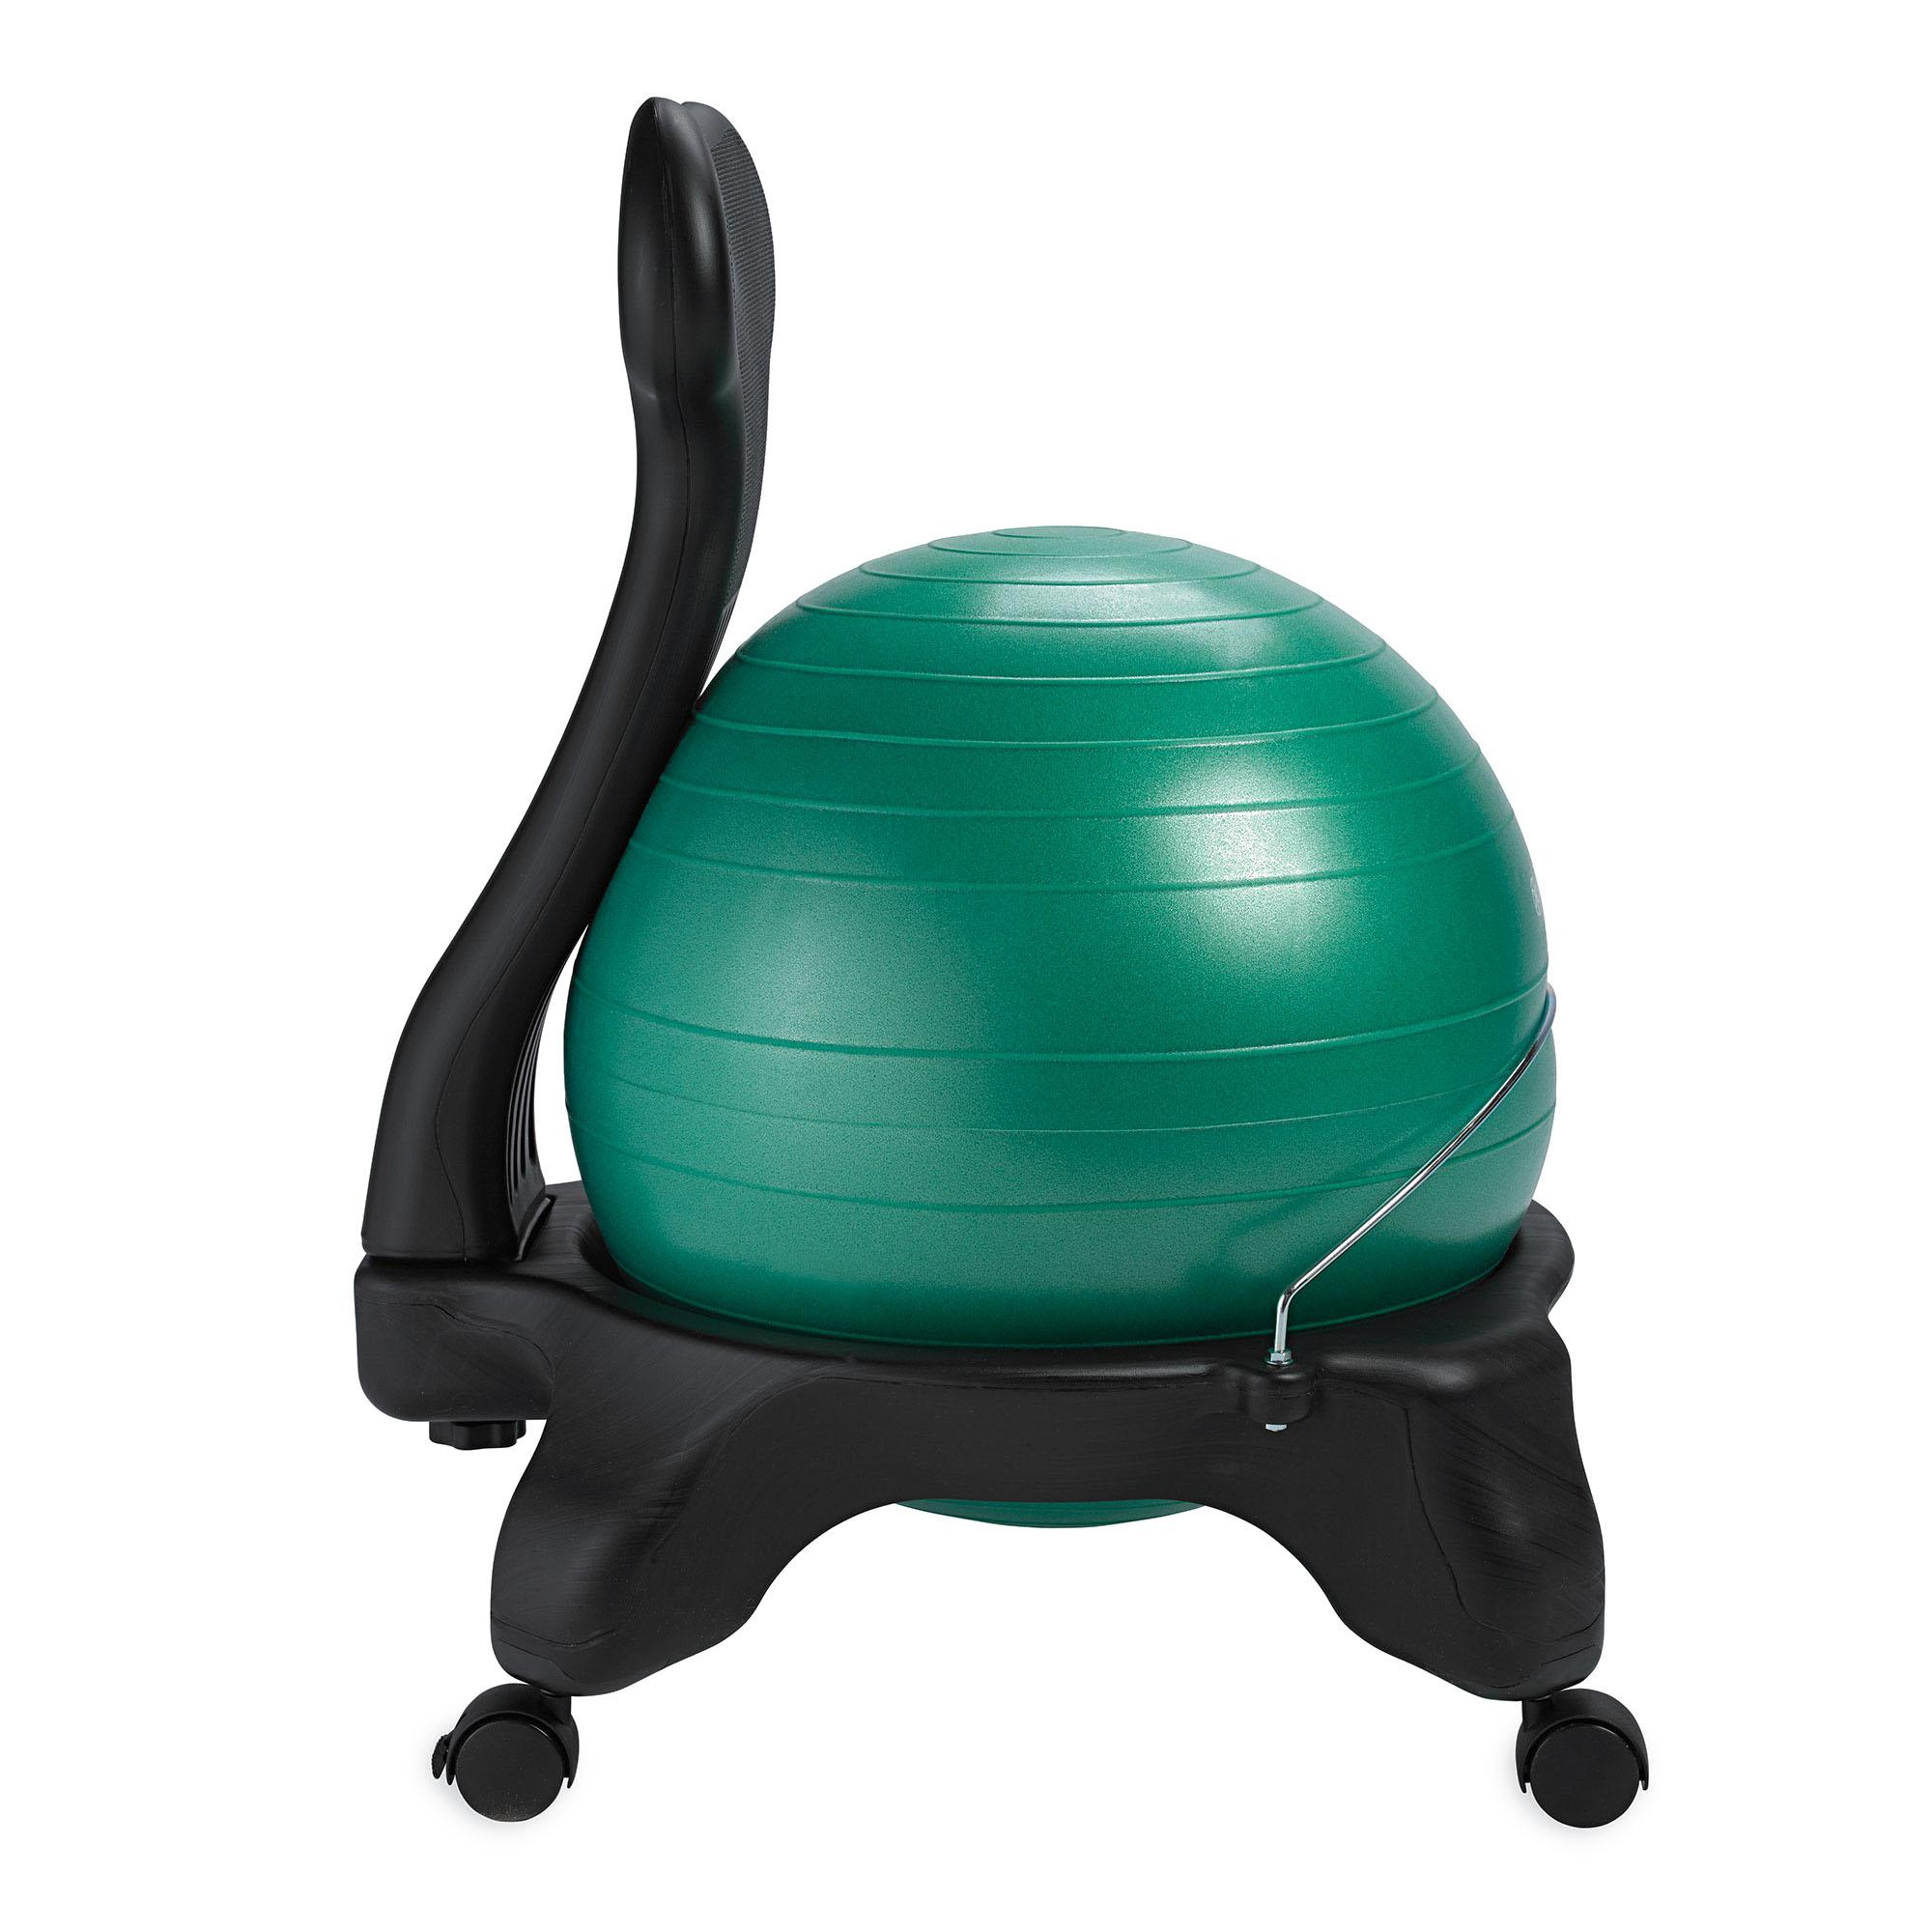 gaiam balance ball chair replacement ball 52cm ocean blue sports outdoors. Black Bedroom Furniture Sets. Home Design Ideas